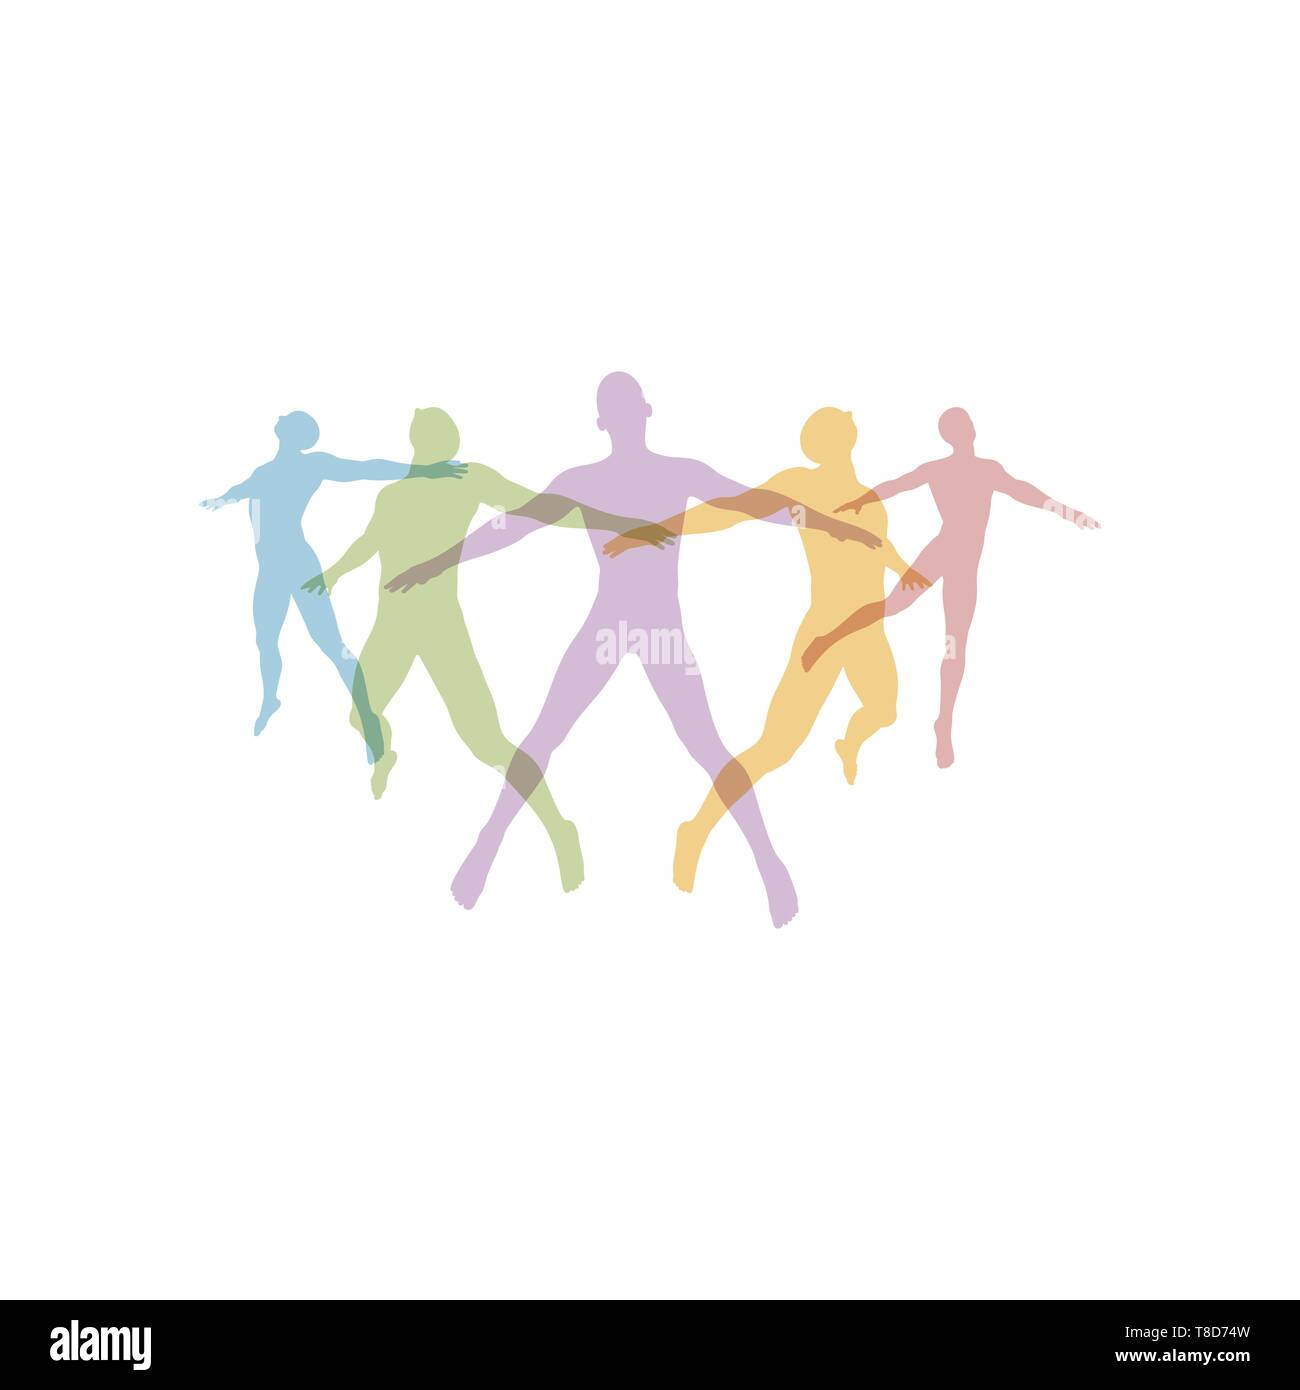 Team concept. Crowd of people icon silhouettes vector. Social icon. People Connecting. Vector illustration. - Stock Vector